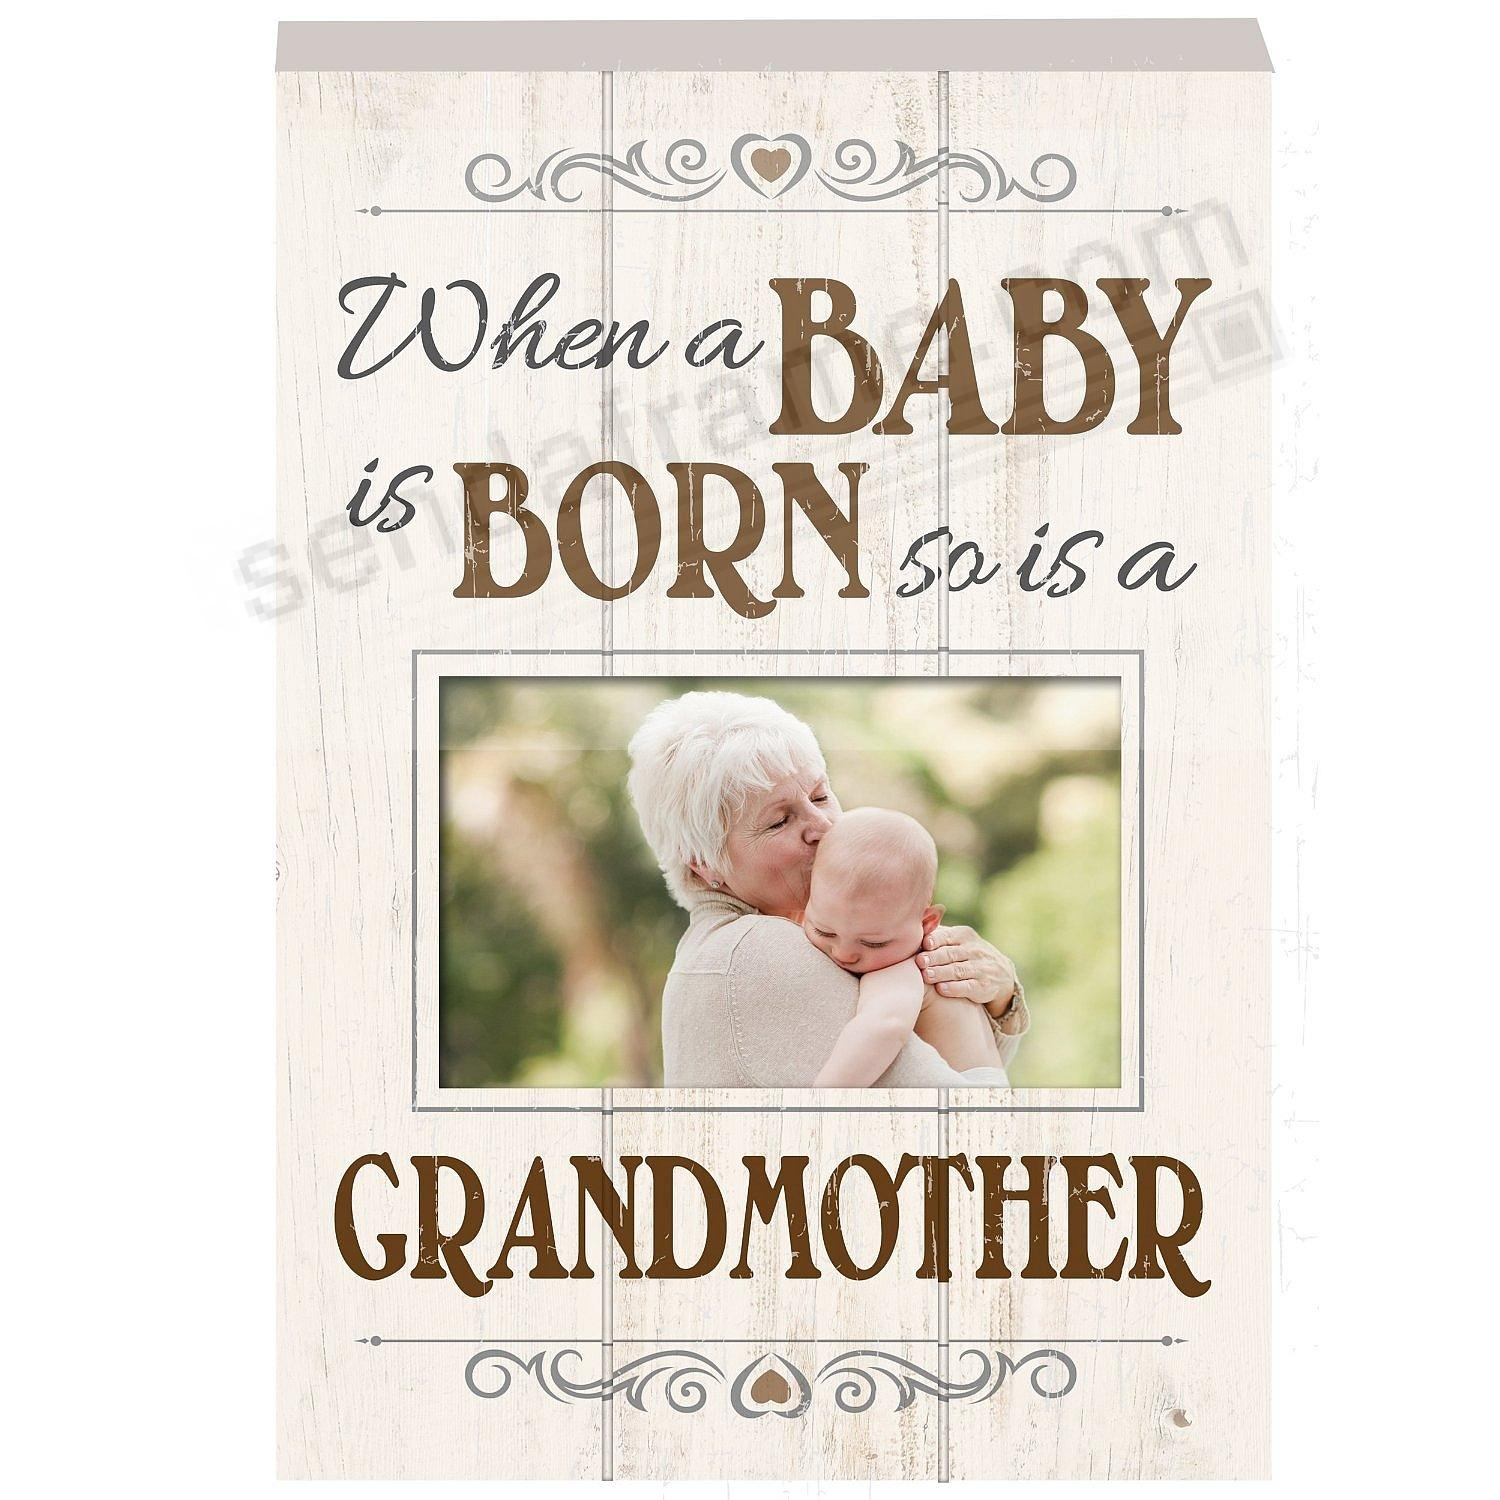 When a Baby is Born - so is a GRANDMOTHER Wood Block Frame by Prinz®